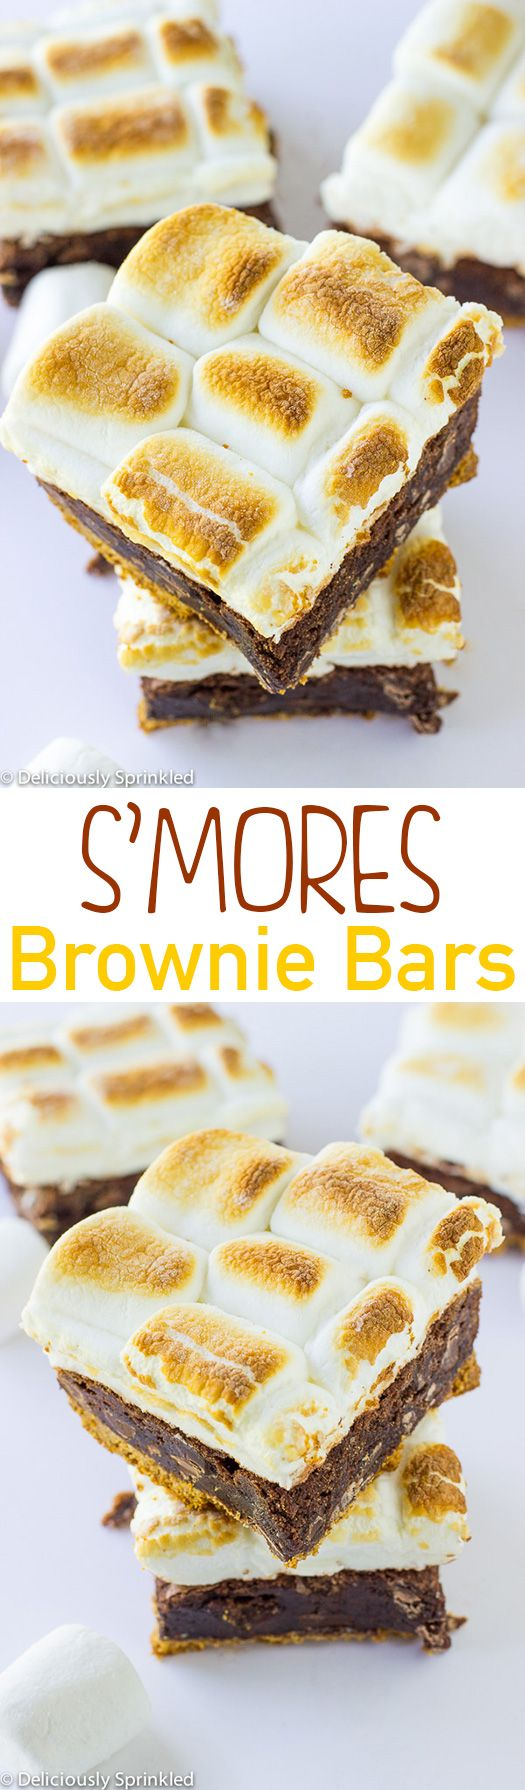 mores Brownie Bars | Recipe | Campfires, Brownies and Bar